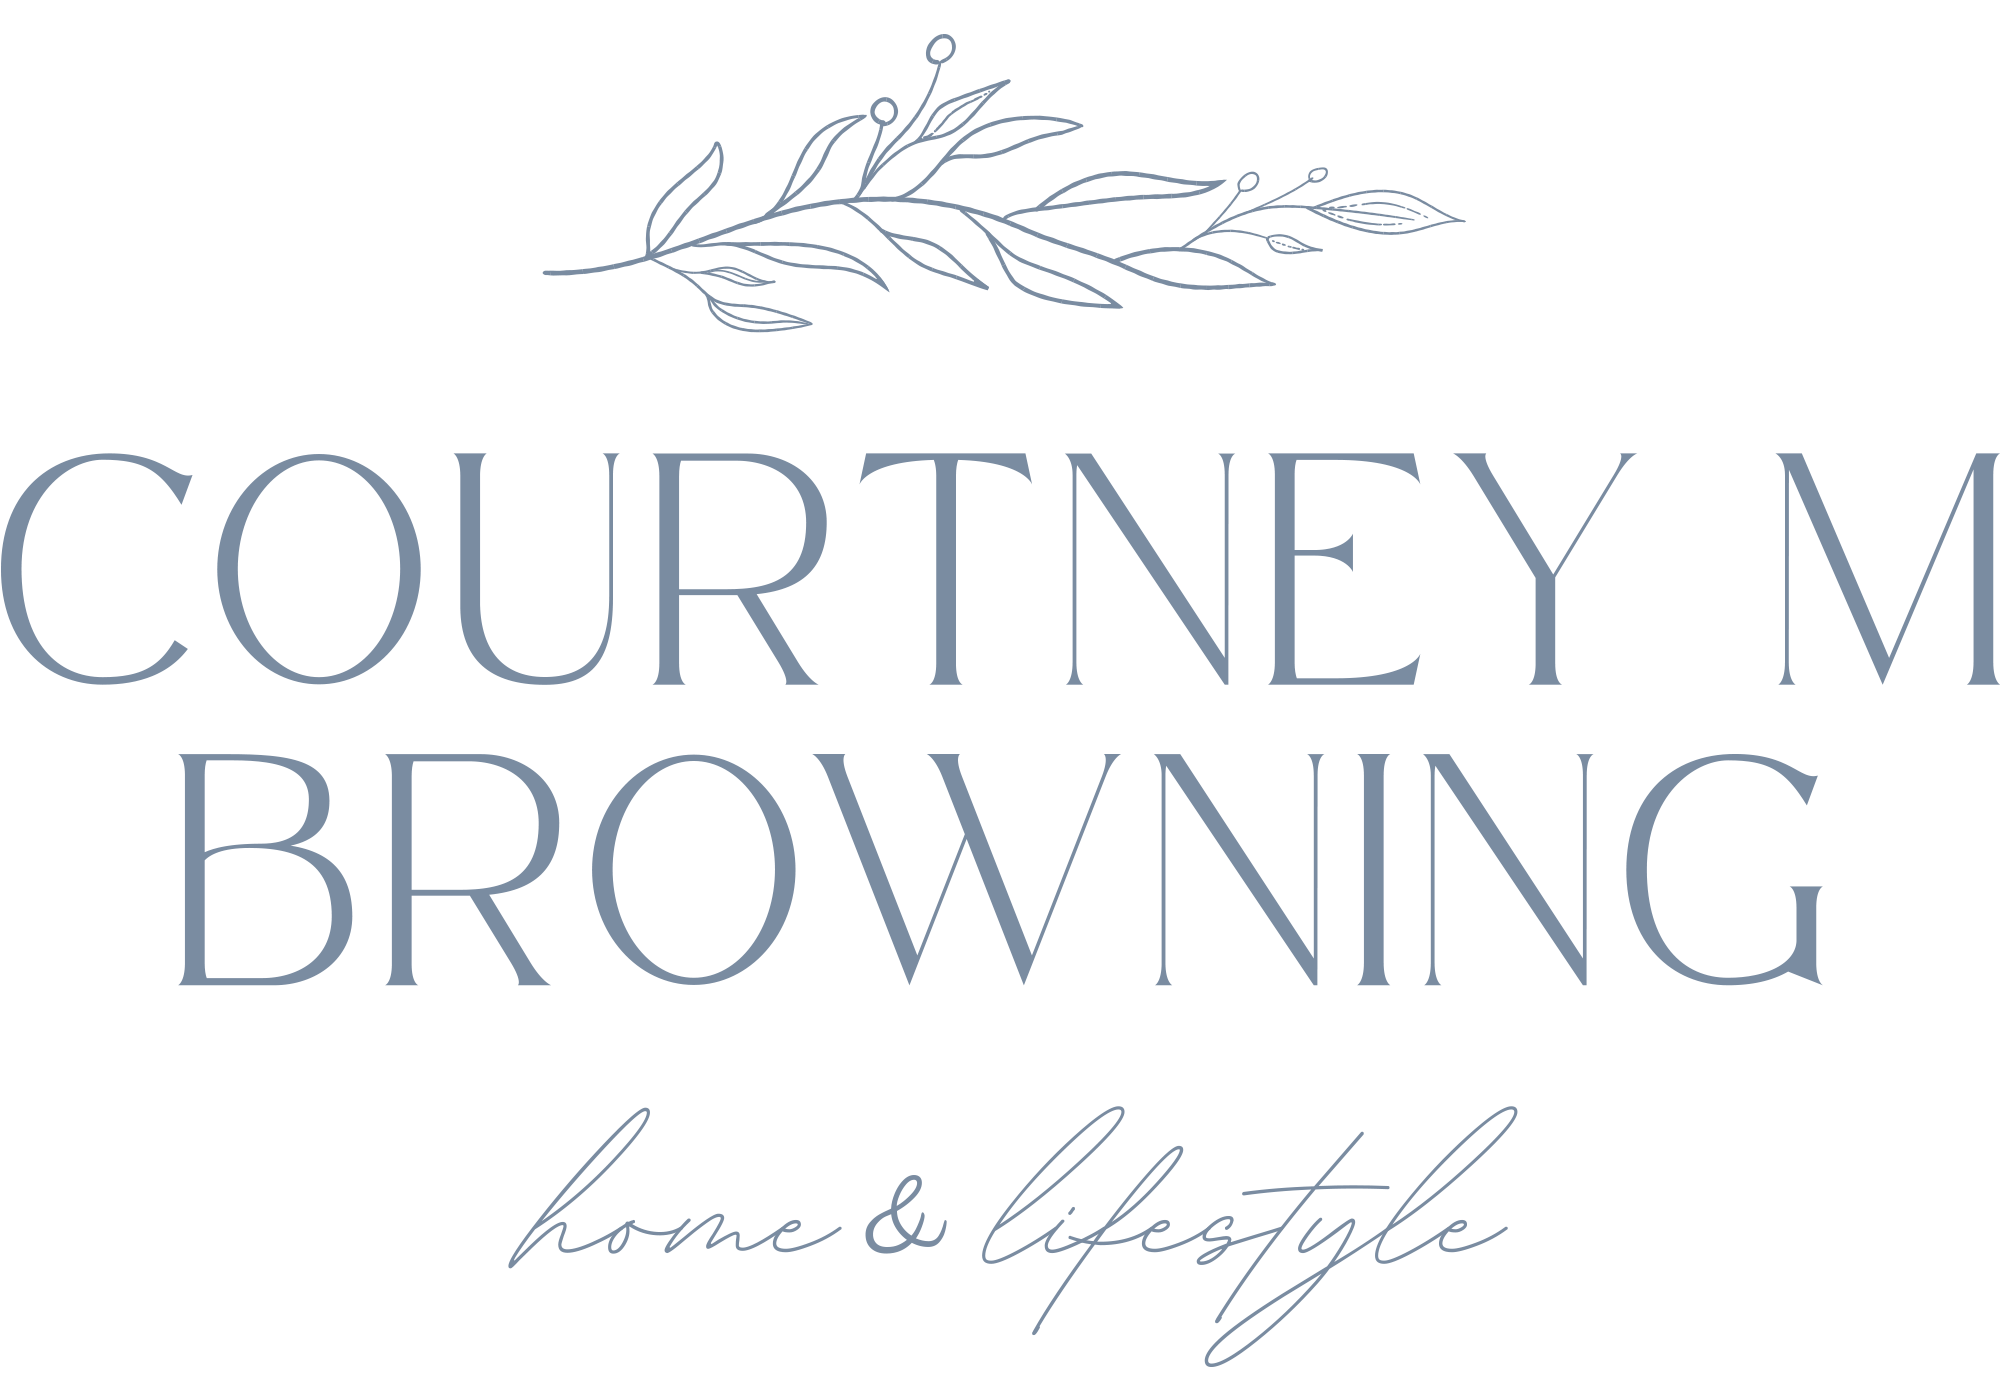 Courtney M Browning